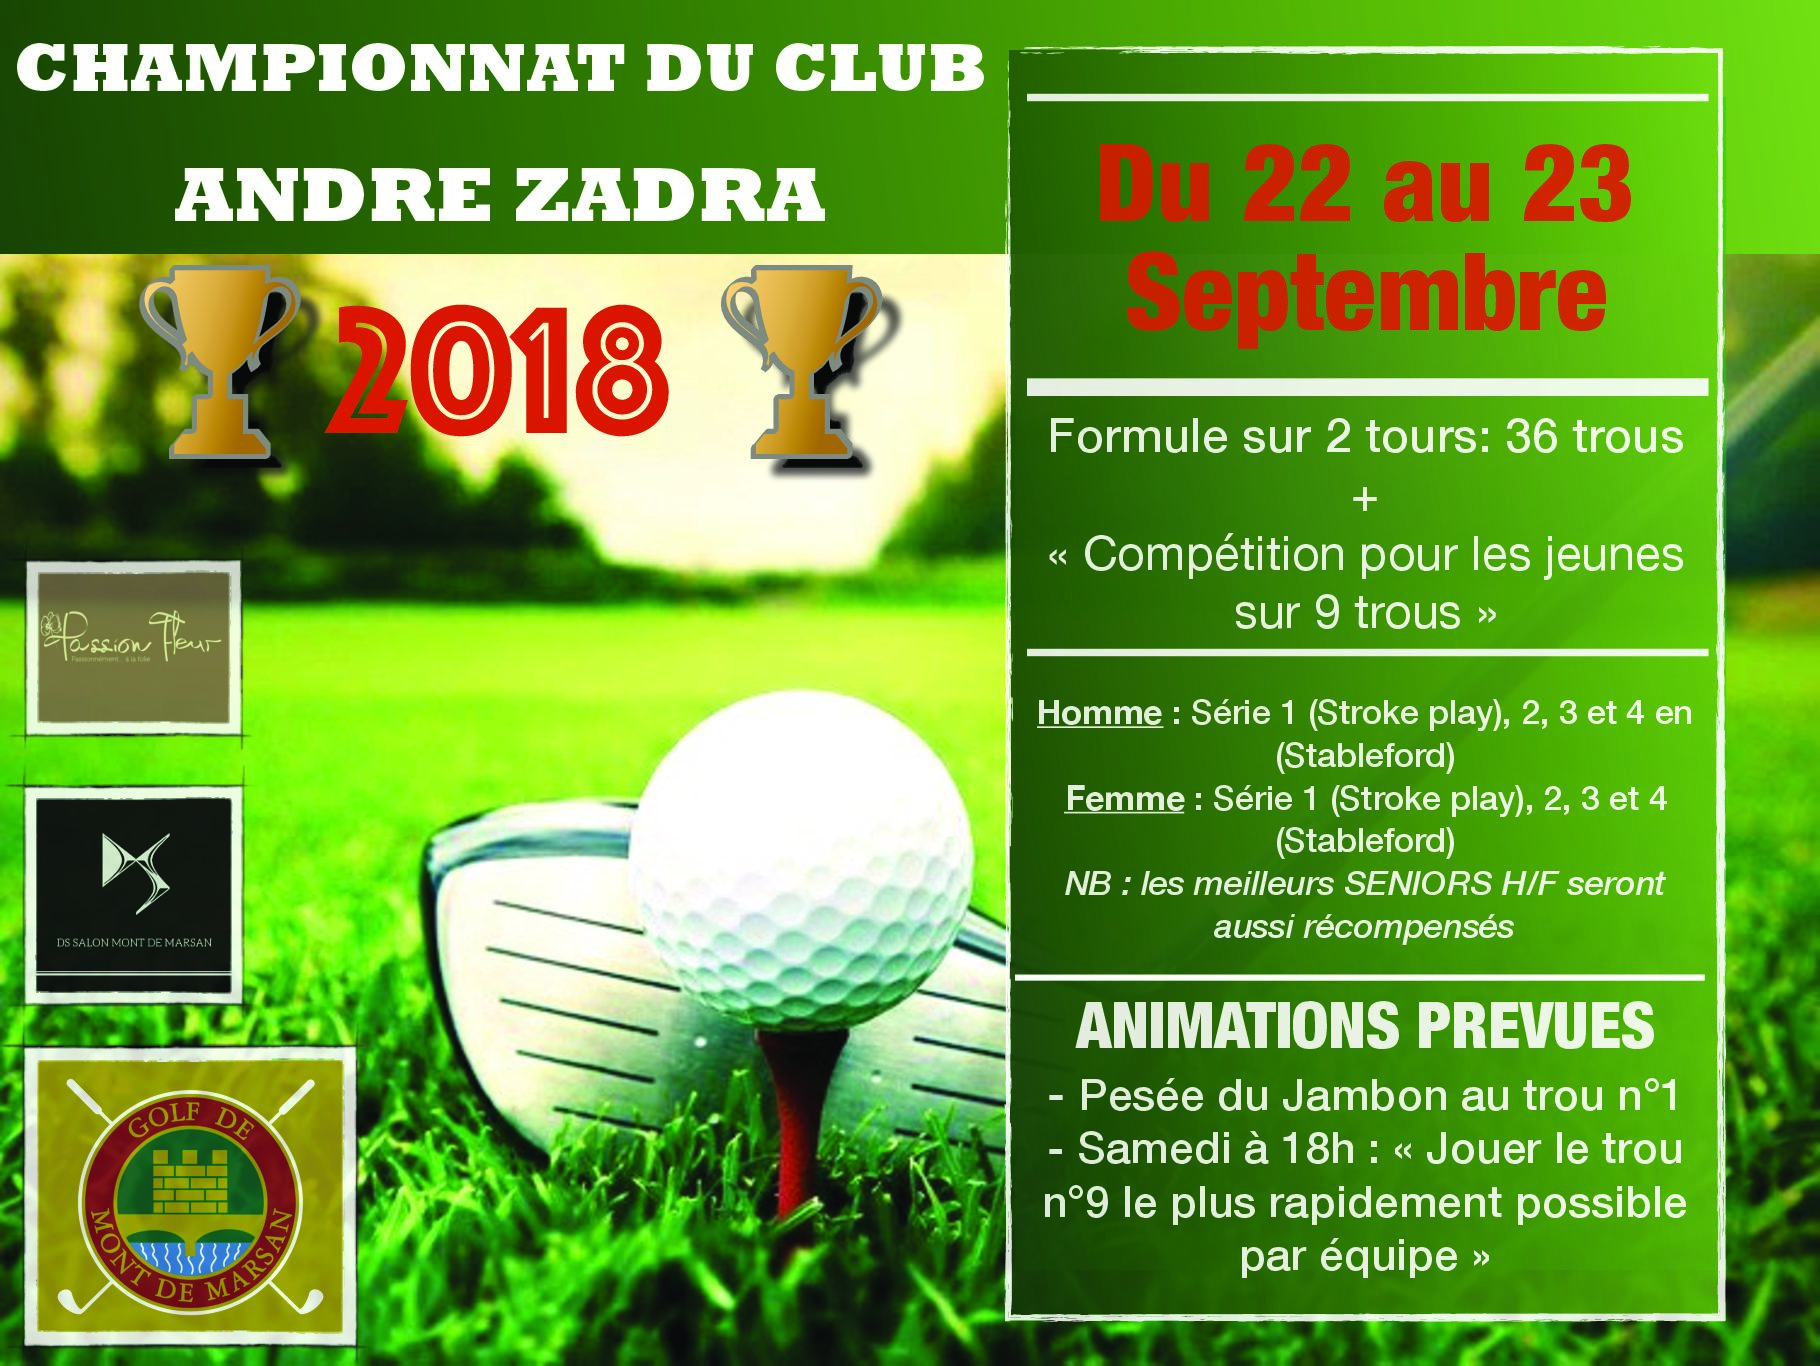 SAVE THE DATE : Championnat du club 2018 du 22 - 23 Septembre